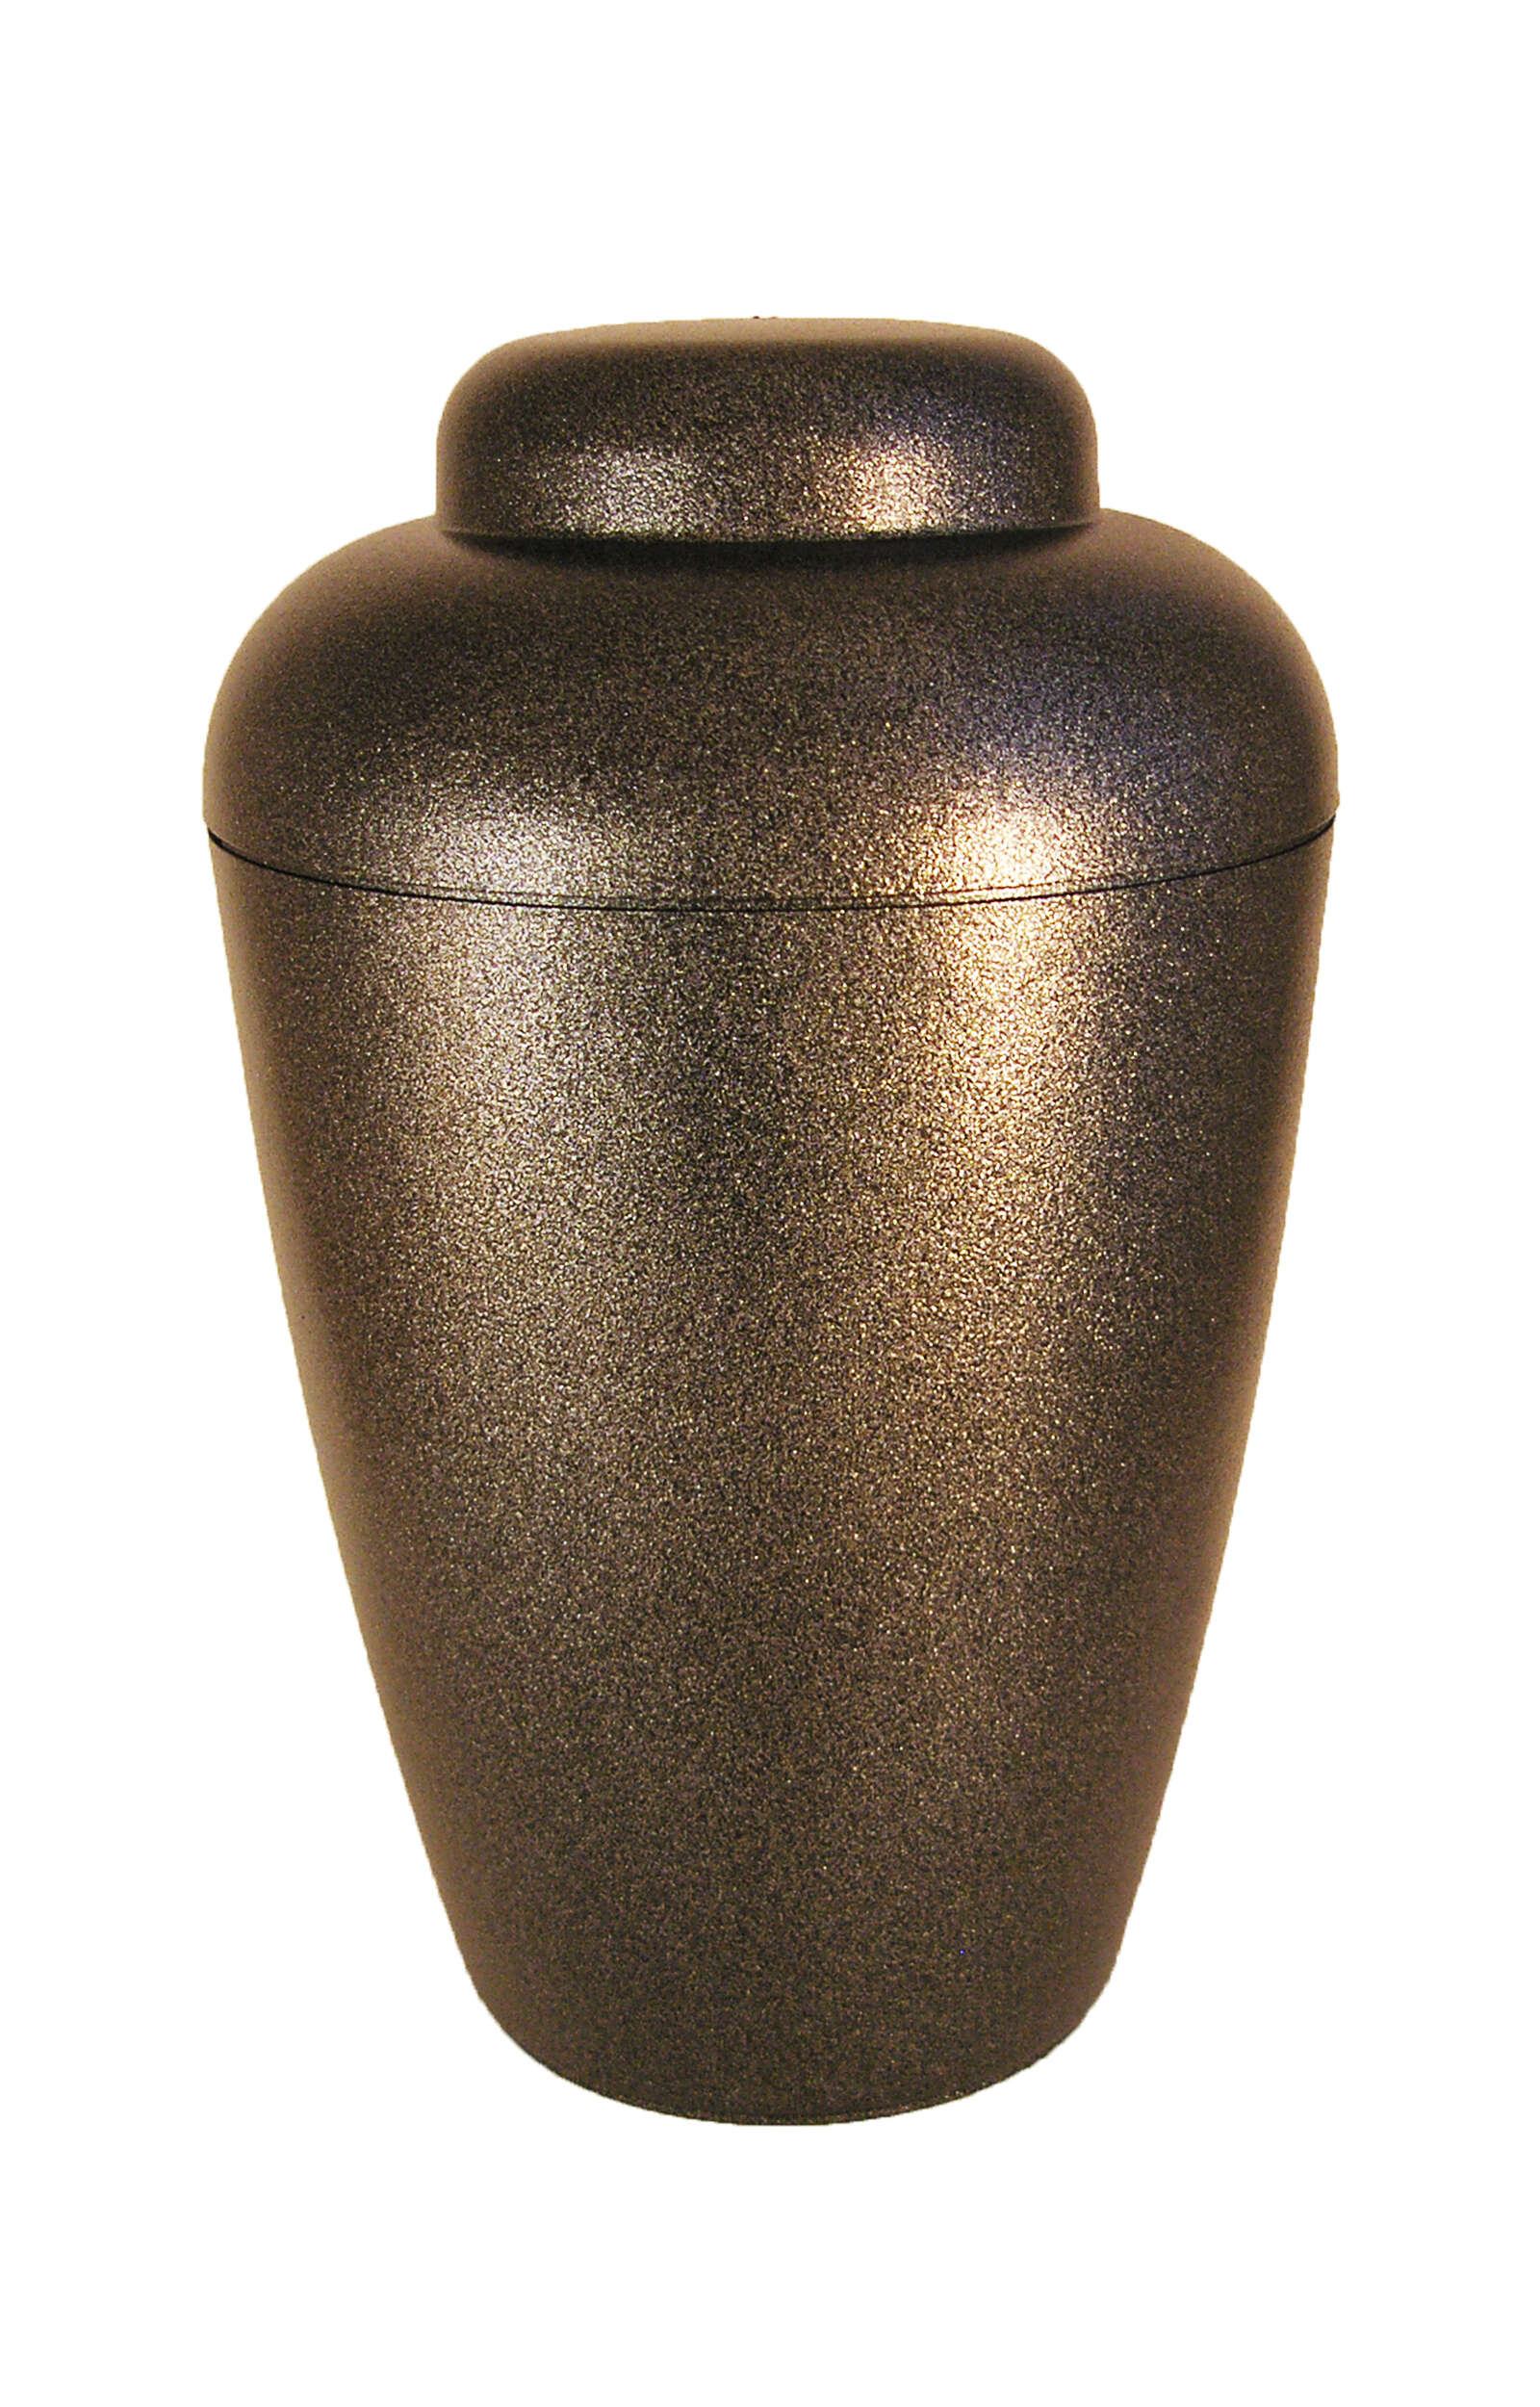 en BVSS1408 biodigradable urn black glossy star dust funeral urn for human ashes on sale